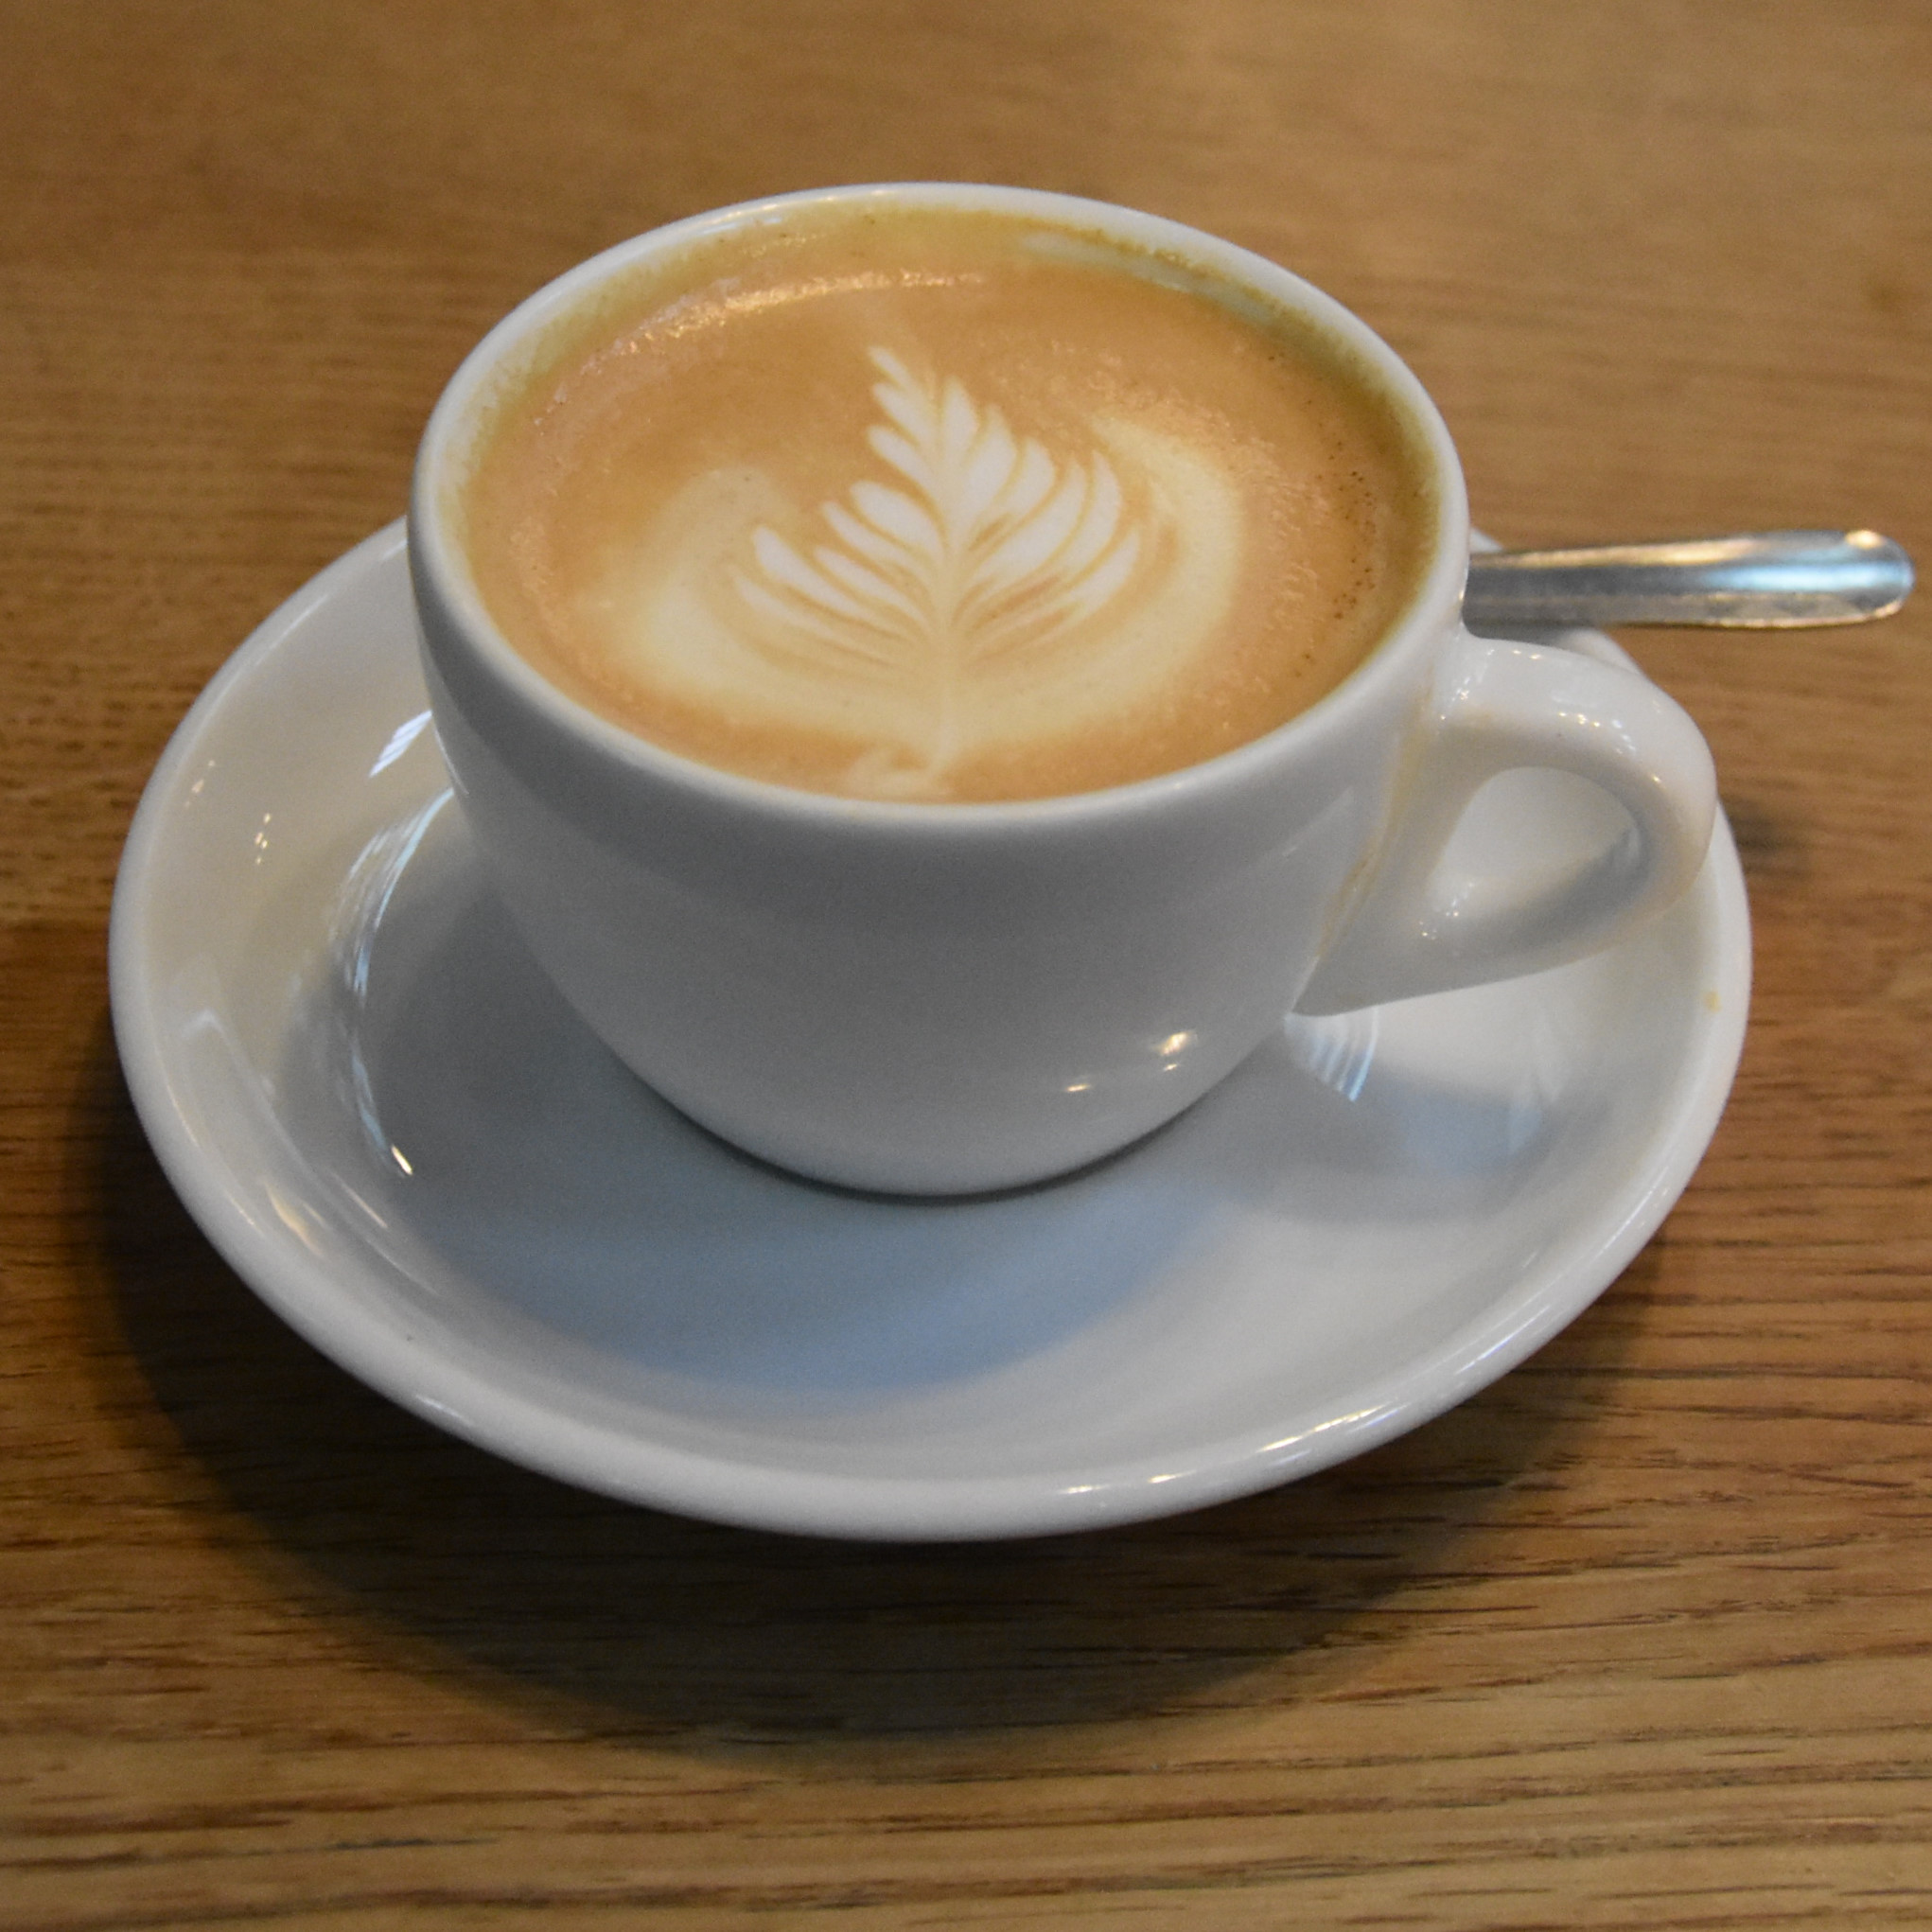 A lovely flat white made with the Up Hill espresso blend from Mission Coffee Works at Host Cafe in St Mary Aldermary Church, London